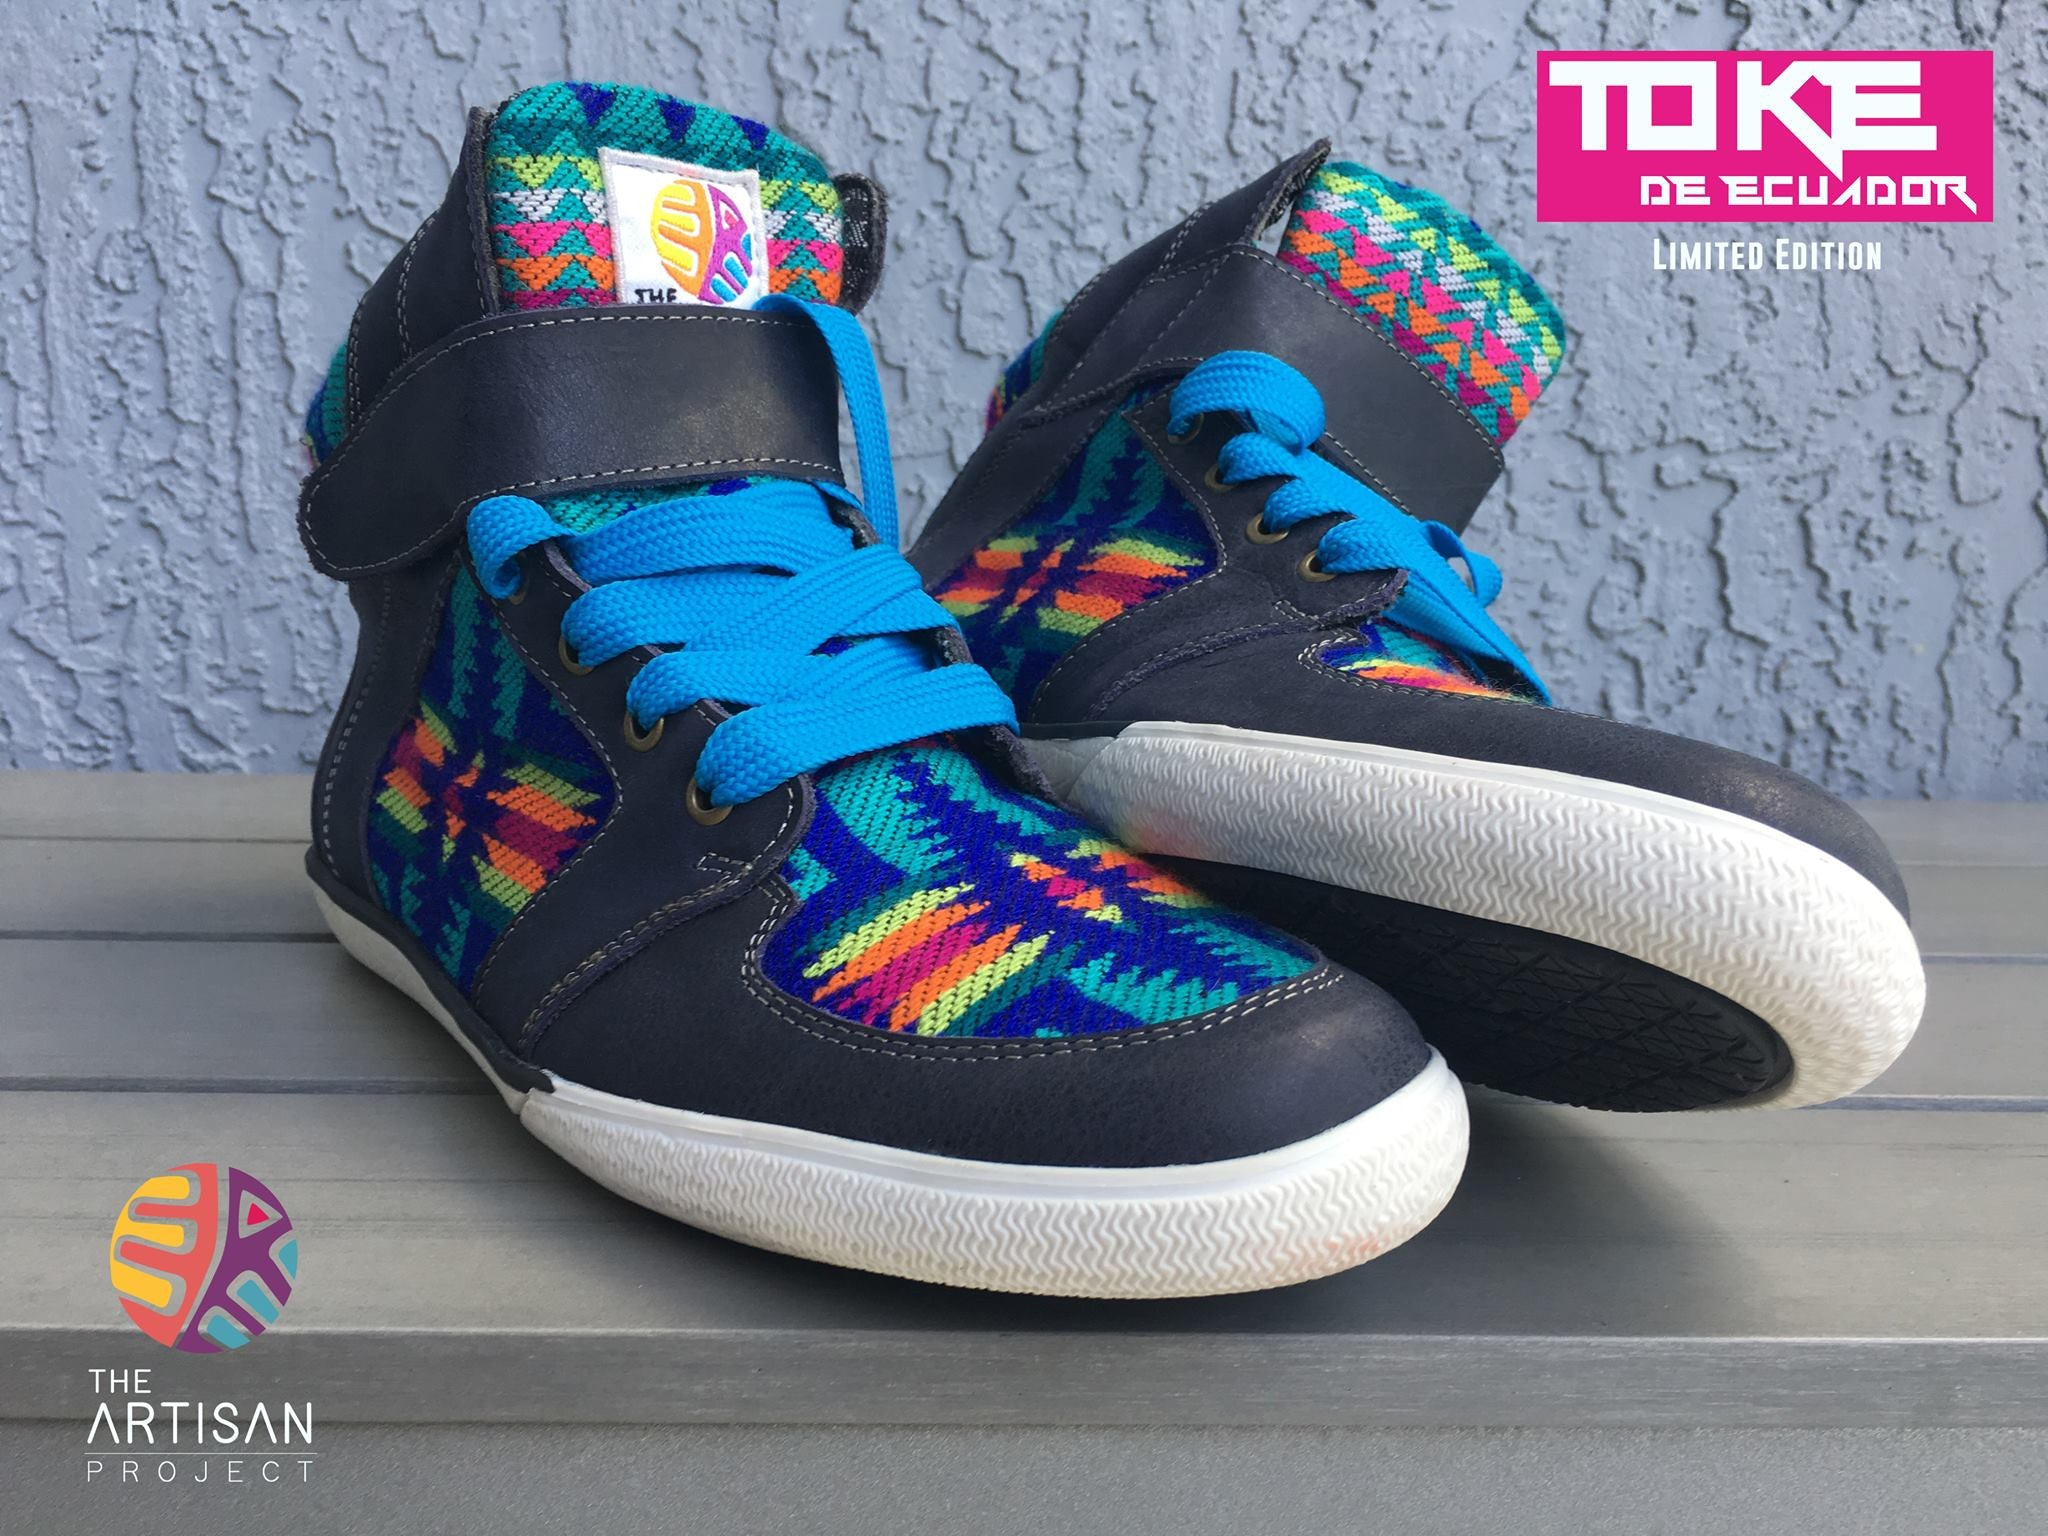 SISAY HIGH TOP - TOKE D ECUADOR LIMITED EDITION